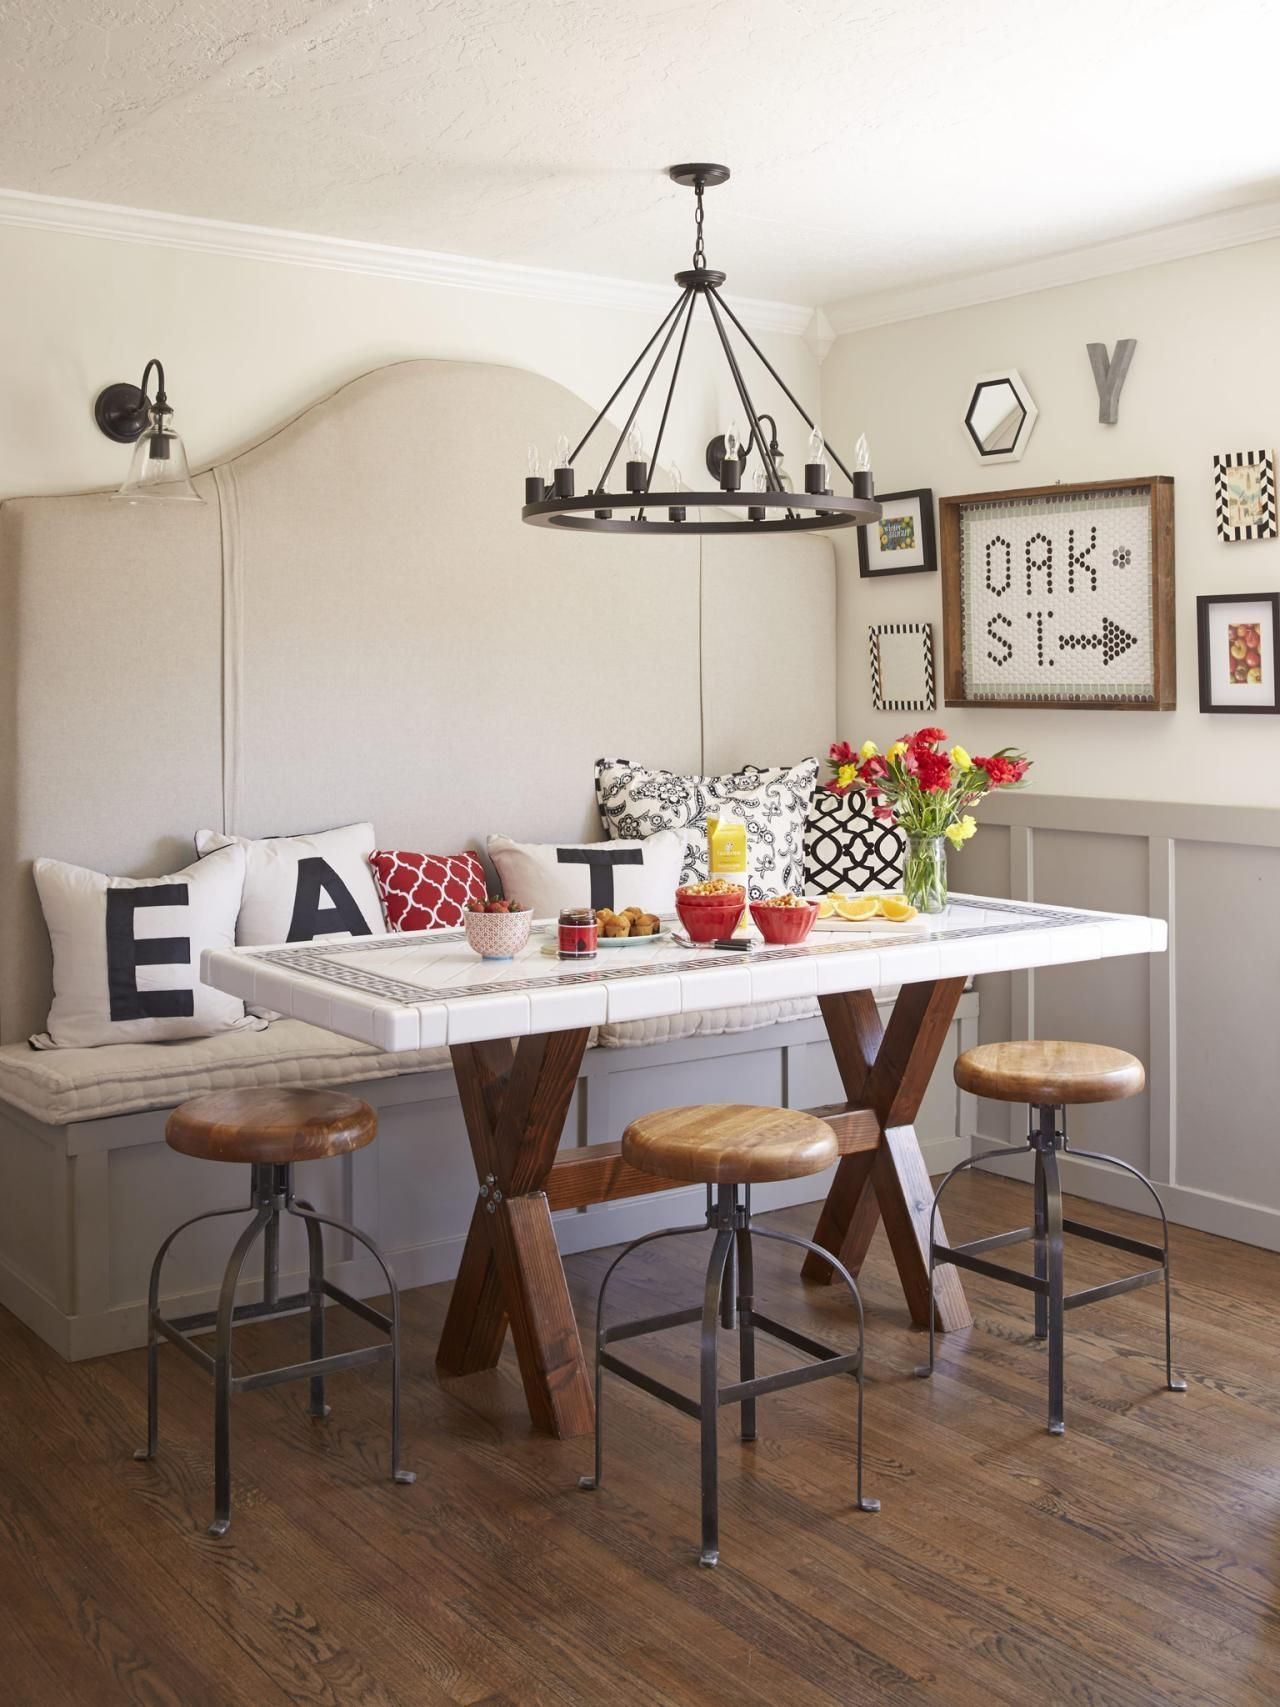 Decorating With A Black White And Red Color Palette  Interior Design Styles And Color Schemes